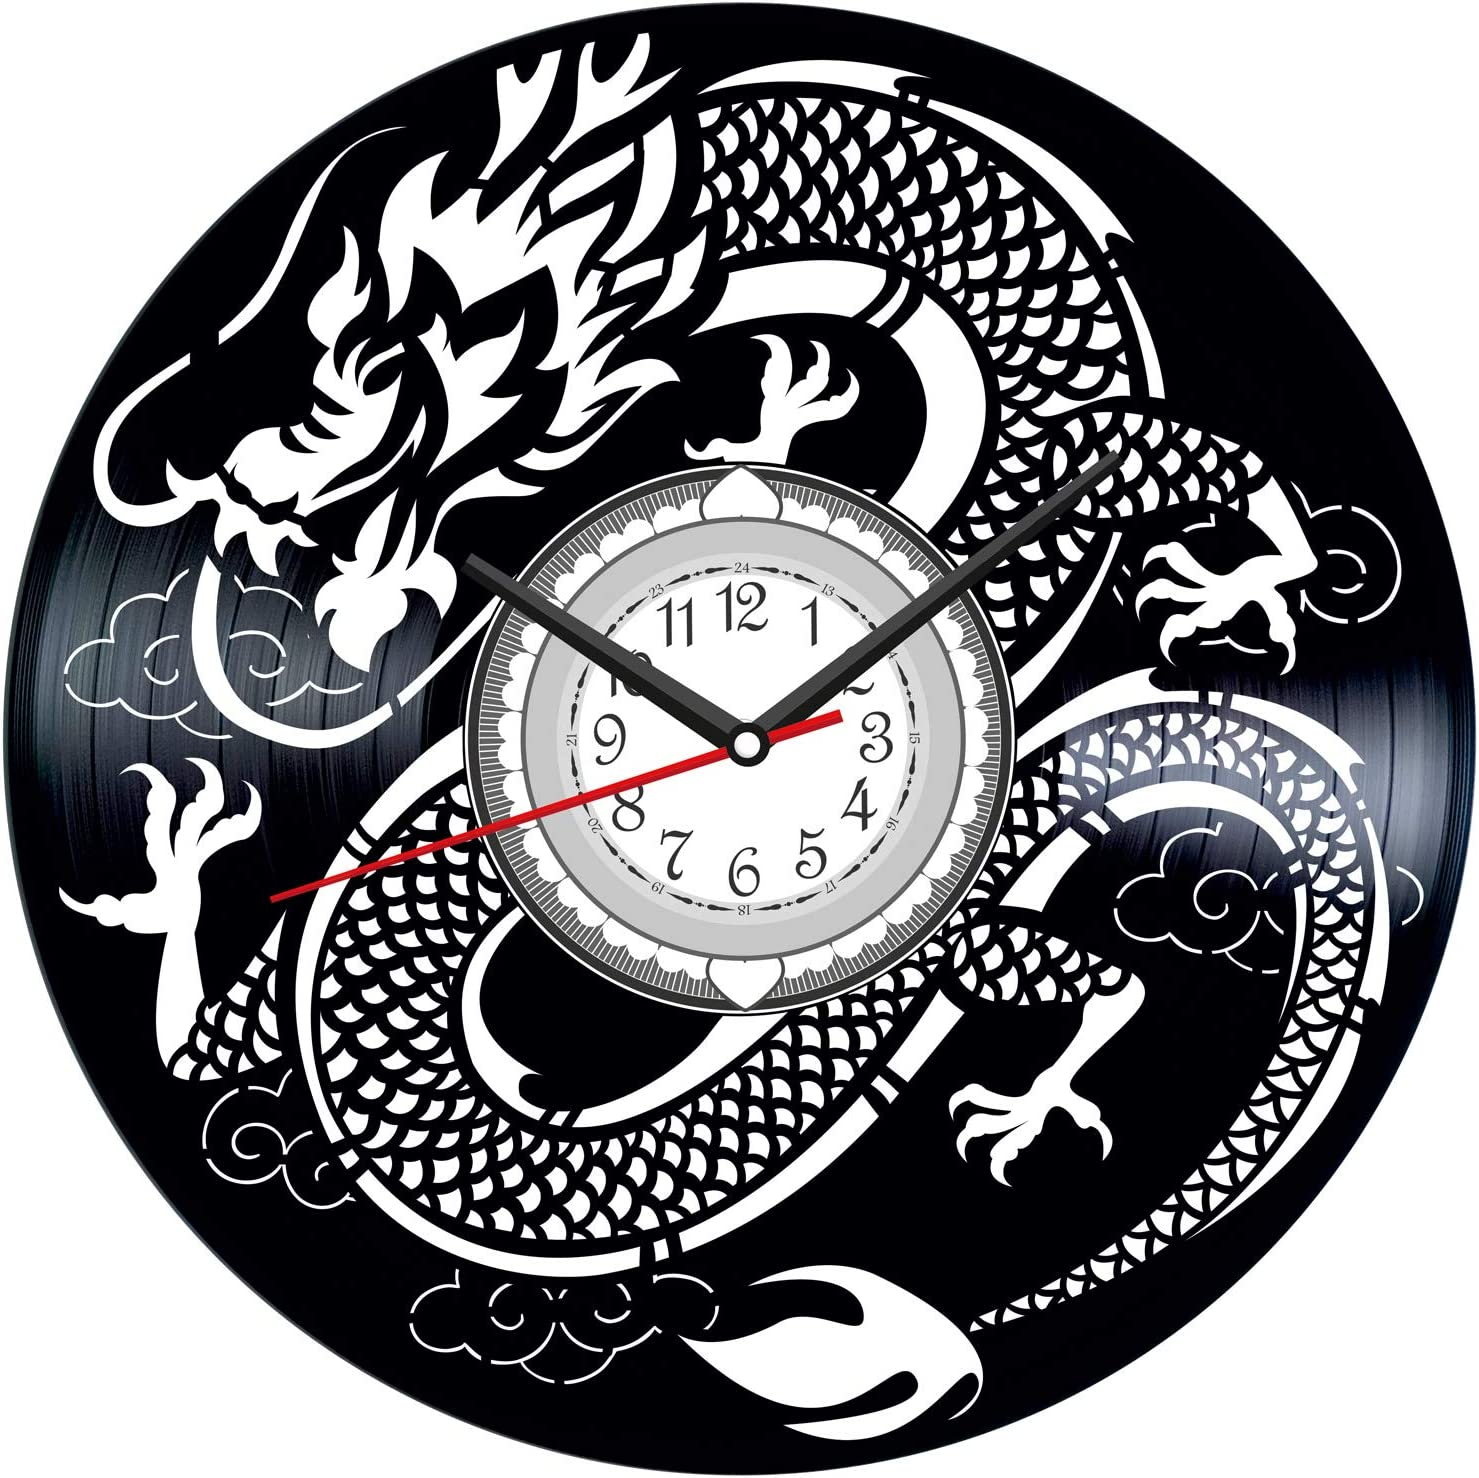 Japanese Dragon Vintage Vinyl Wall Clock - Great Home Decor for Bedroom Kitchen Living Room Idea Birthday Christmas Anniversary for Him Her - Unique Wall Art - Size 12 Inches